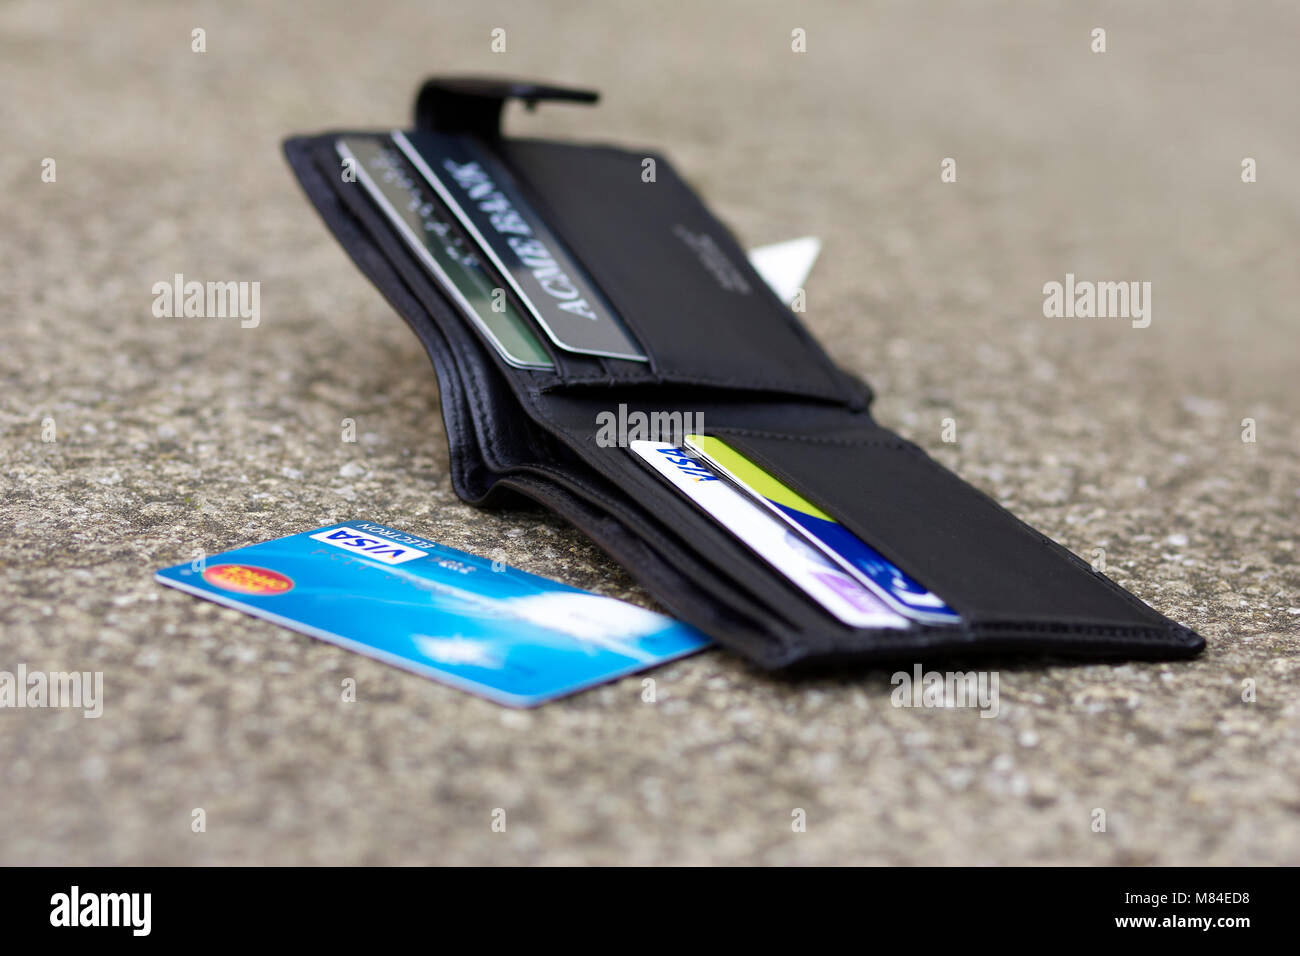 Dropped wallet laid on the floor - Stock Image